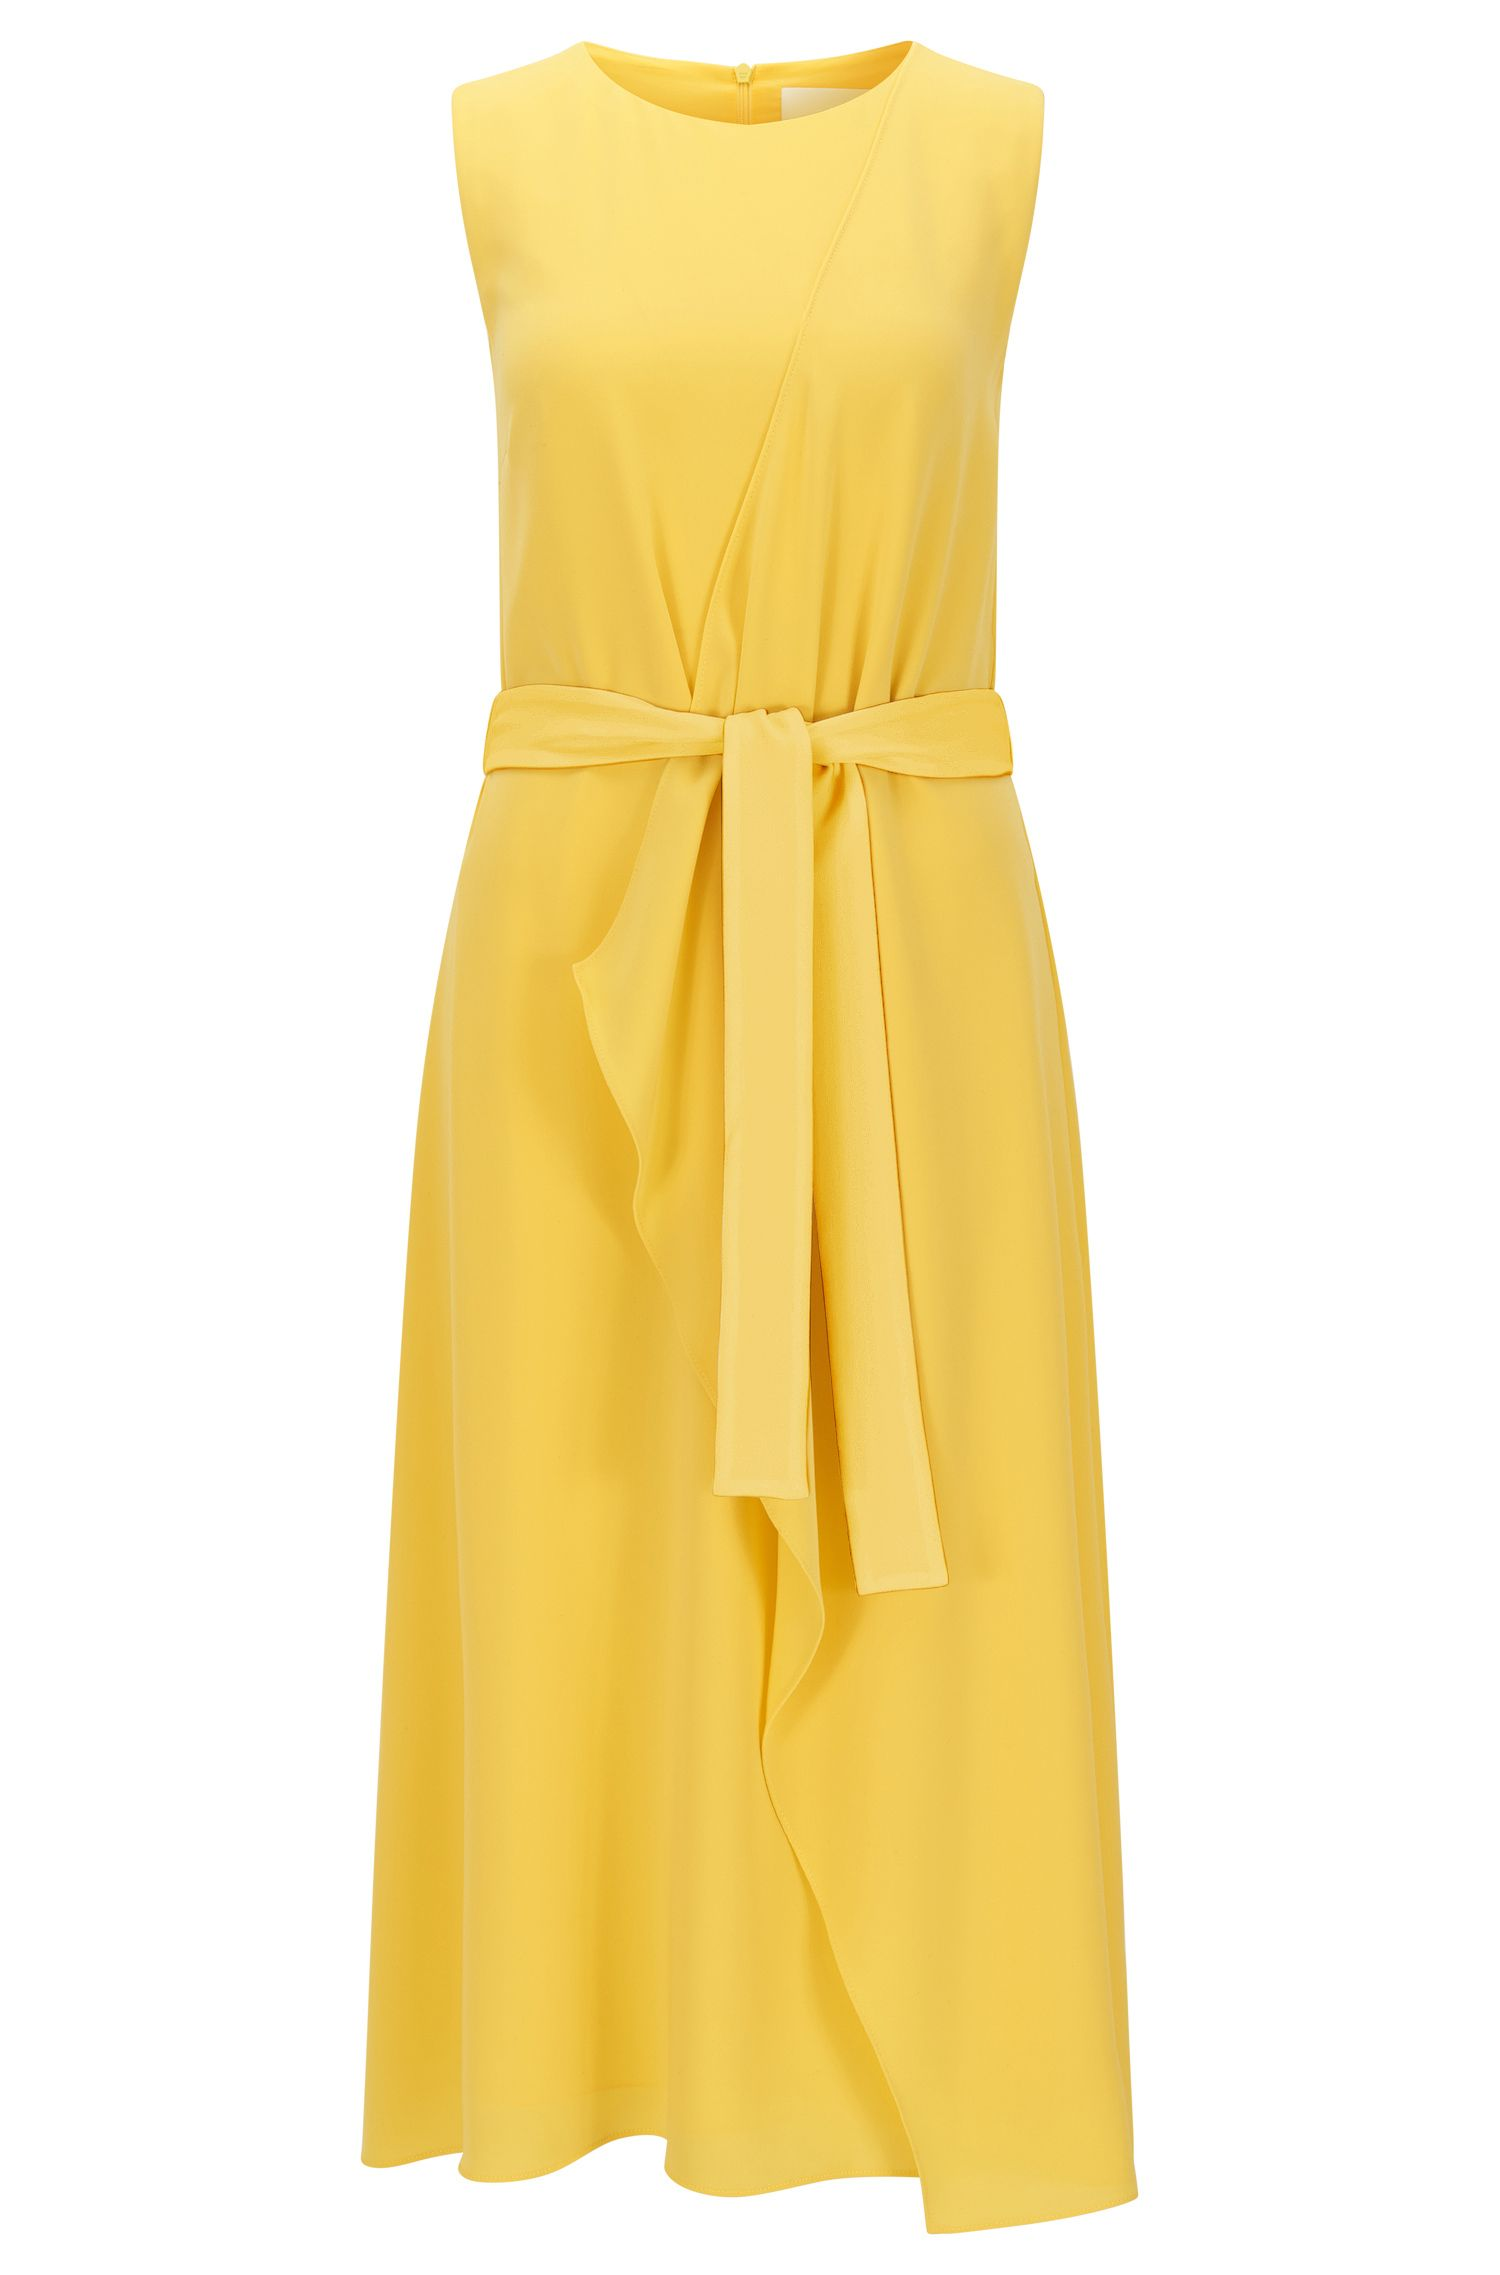 Relaxed-fit layered dress in mid-weight fabric